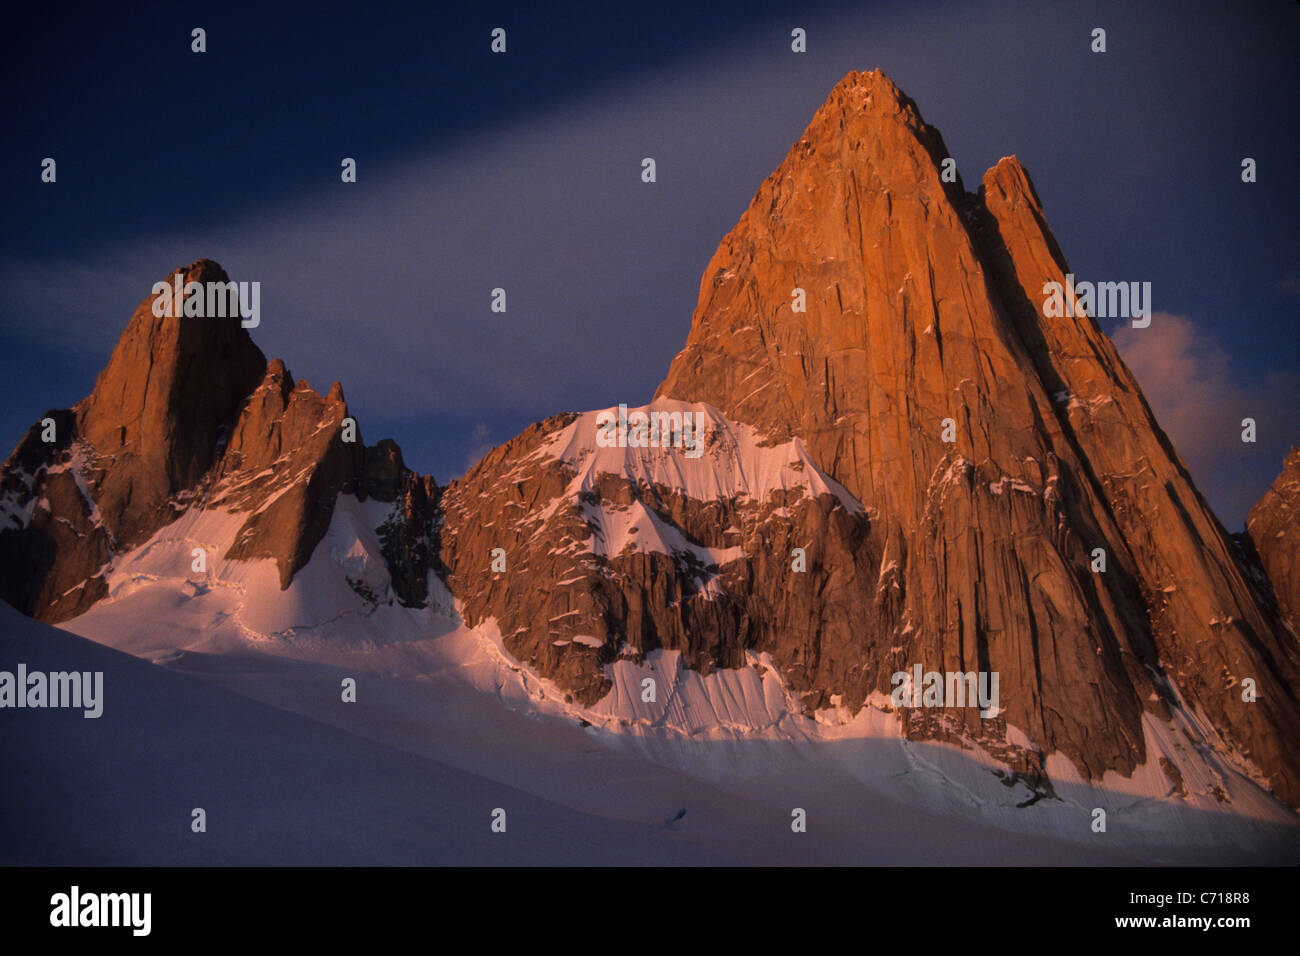 Sunrise on Mount Fitz Roy, El Chalten, Patagonia, Argentina. - Stock Image